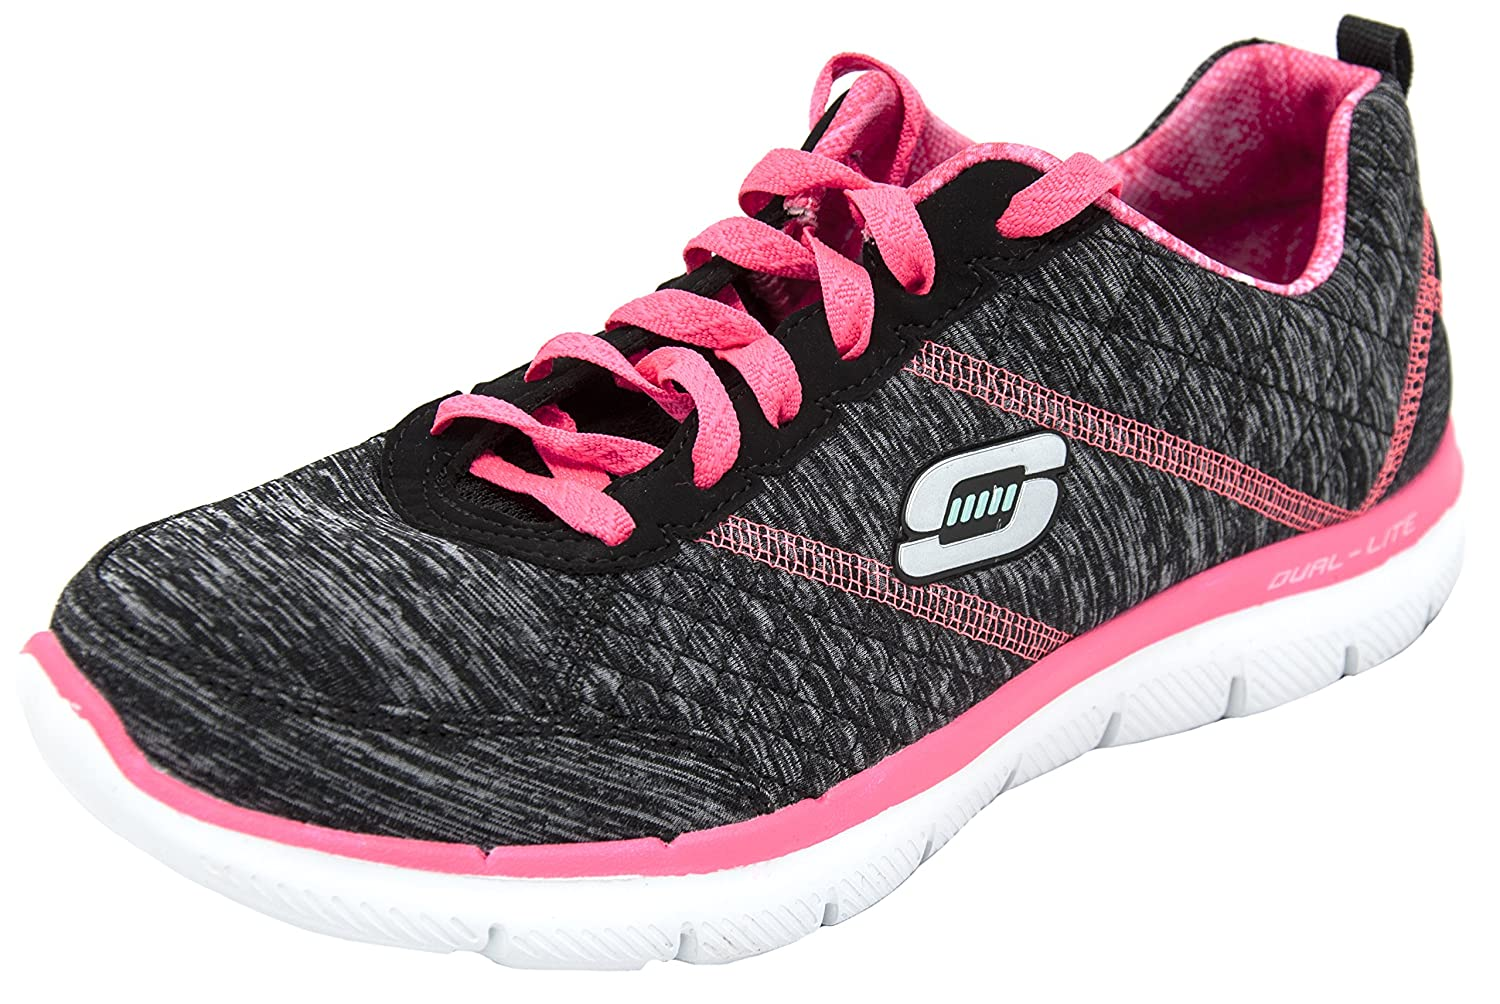 Skechers Women's Flex Appeal 2.0 Sneaker B0718WGQY5 10 M US|Bkhp/Black/Hot Pink